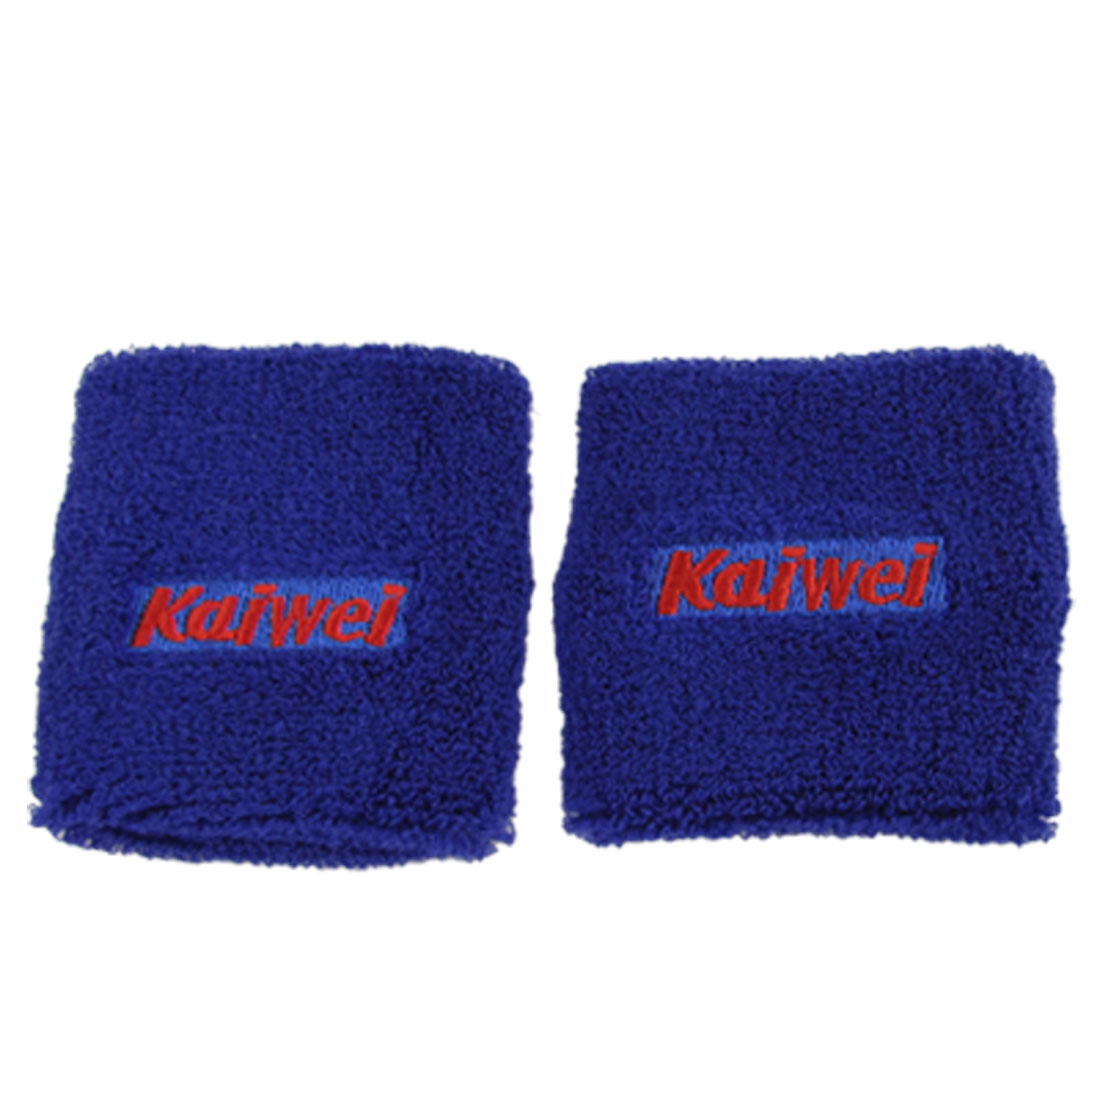 Wrist Blue Sweatband for Sports Baseball Basketball